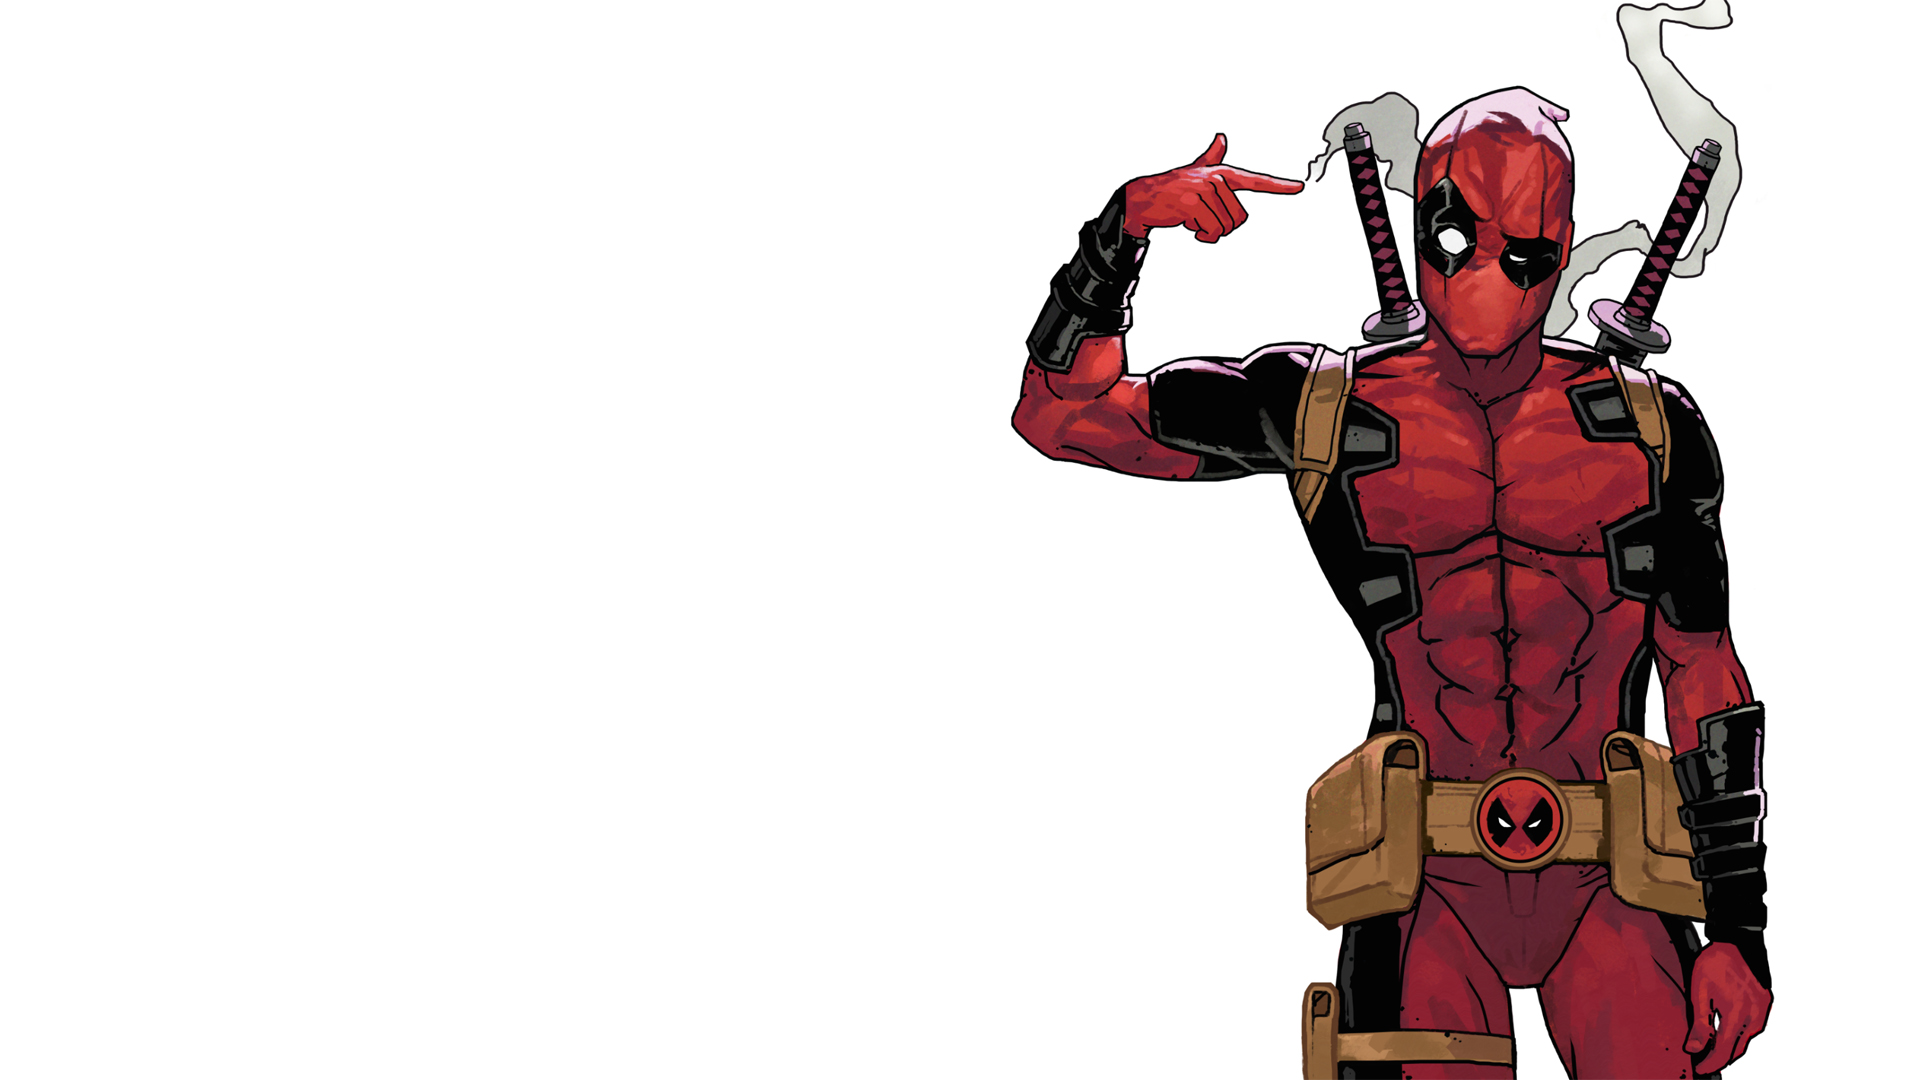 Collection of Deadpool Comic Wallpaper on HDWallpapers